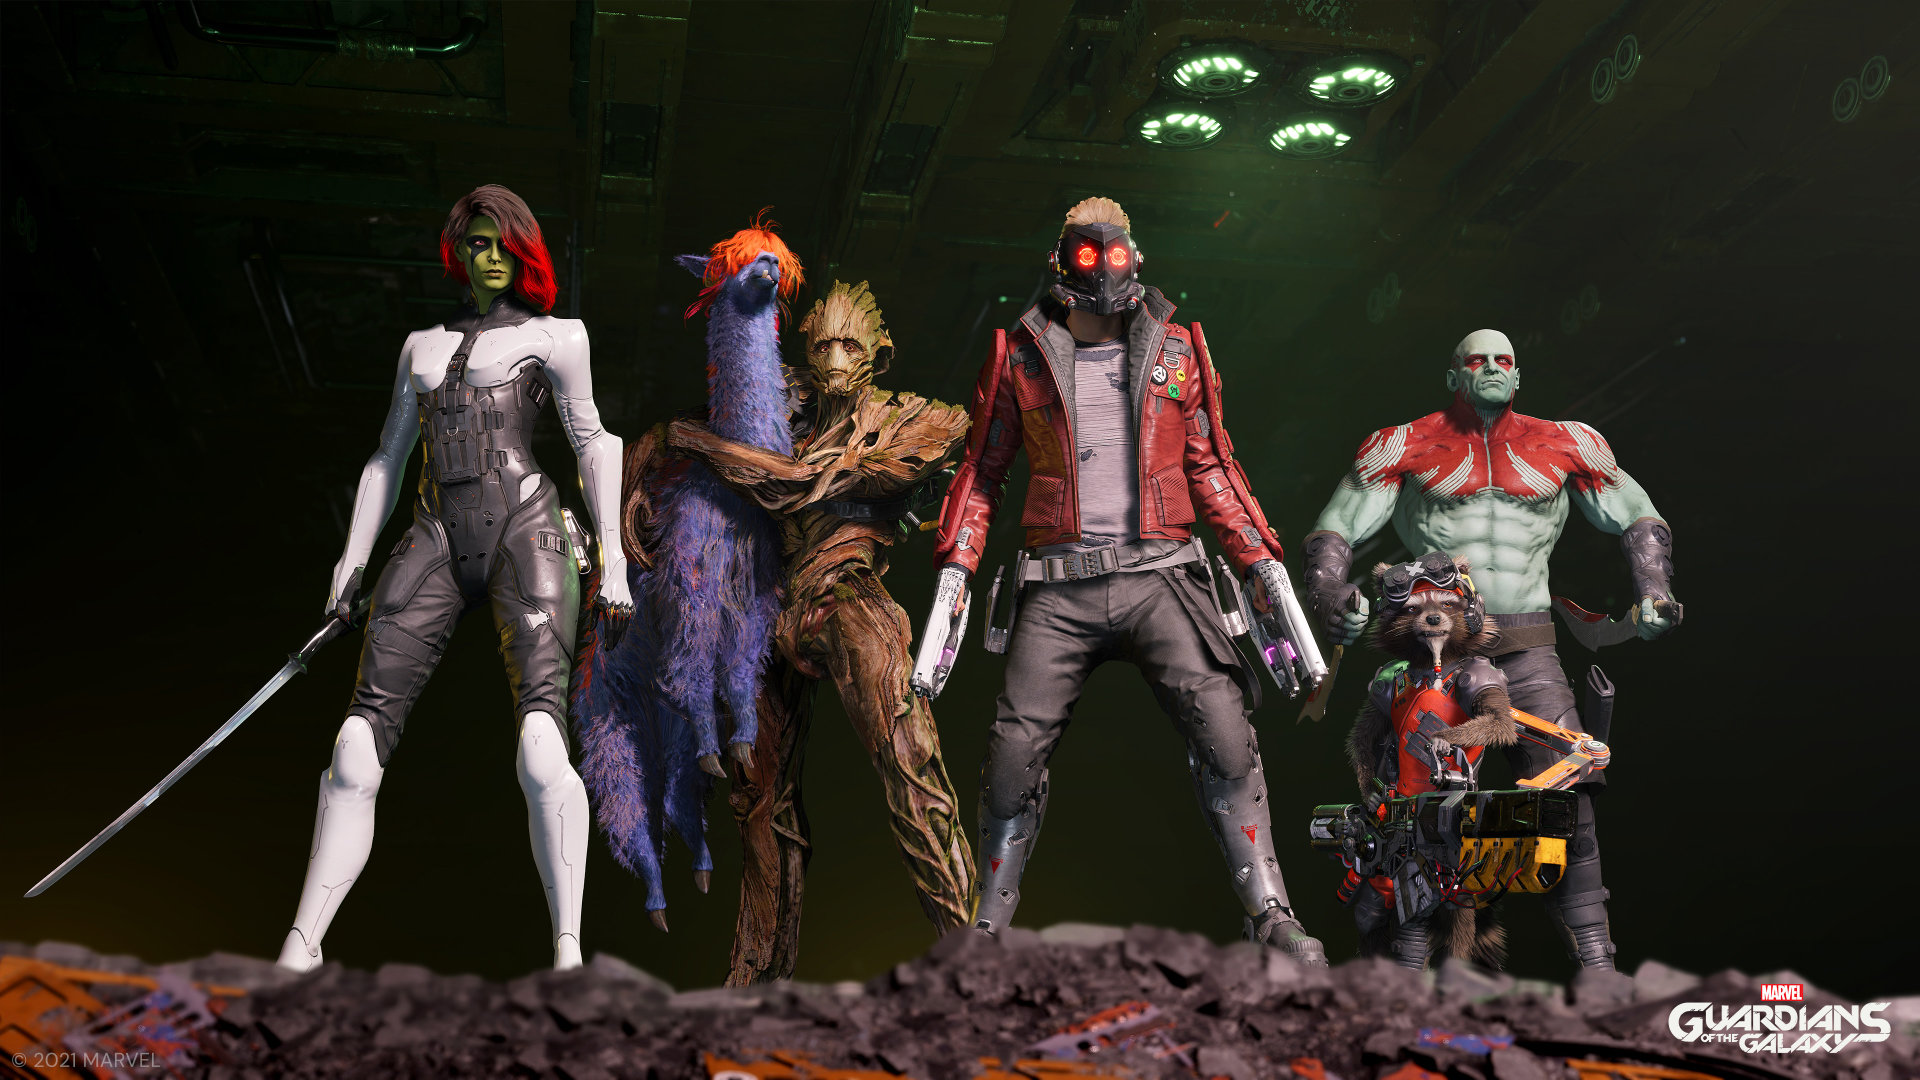 Marvel's Guardians of the Galaxy Screenshot of the cast standing together.